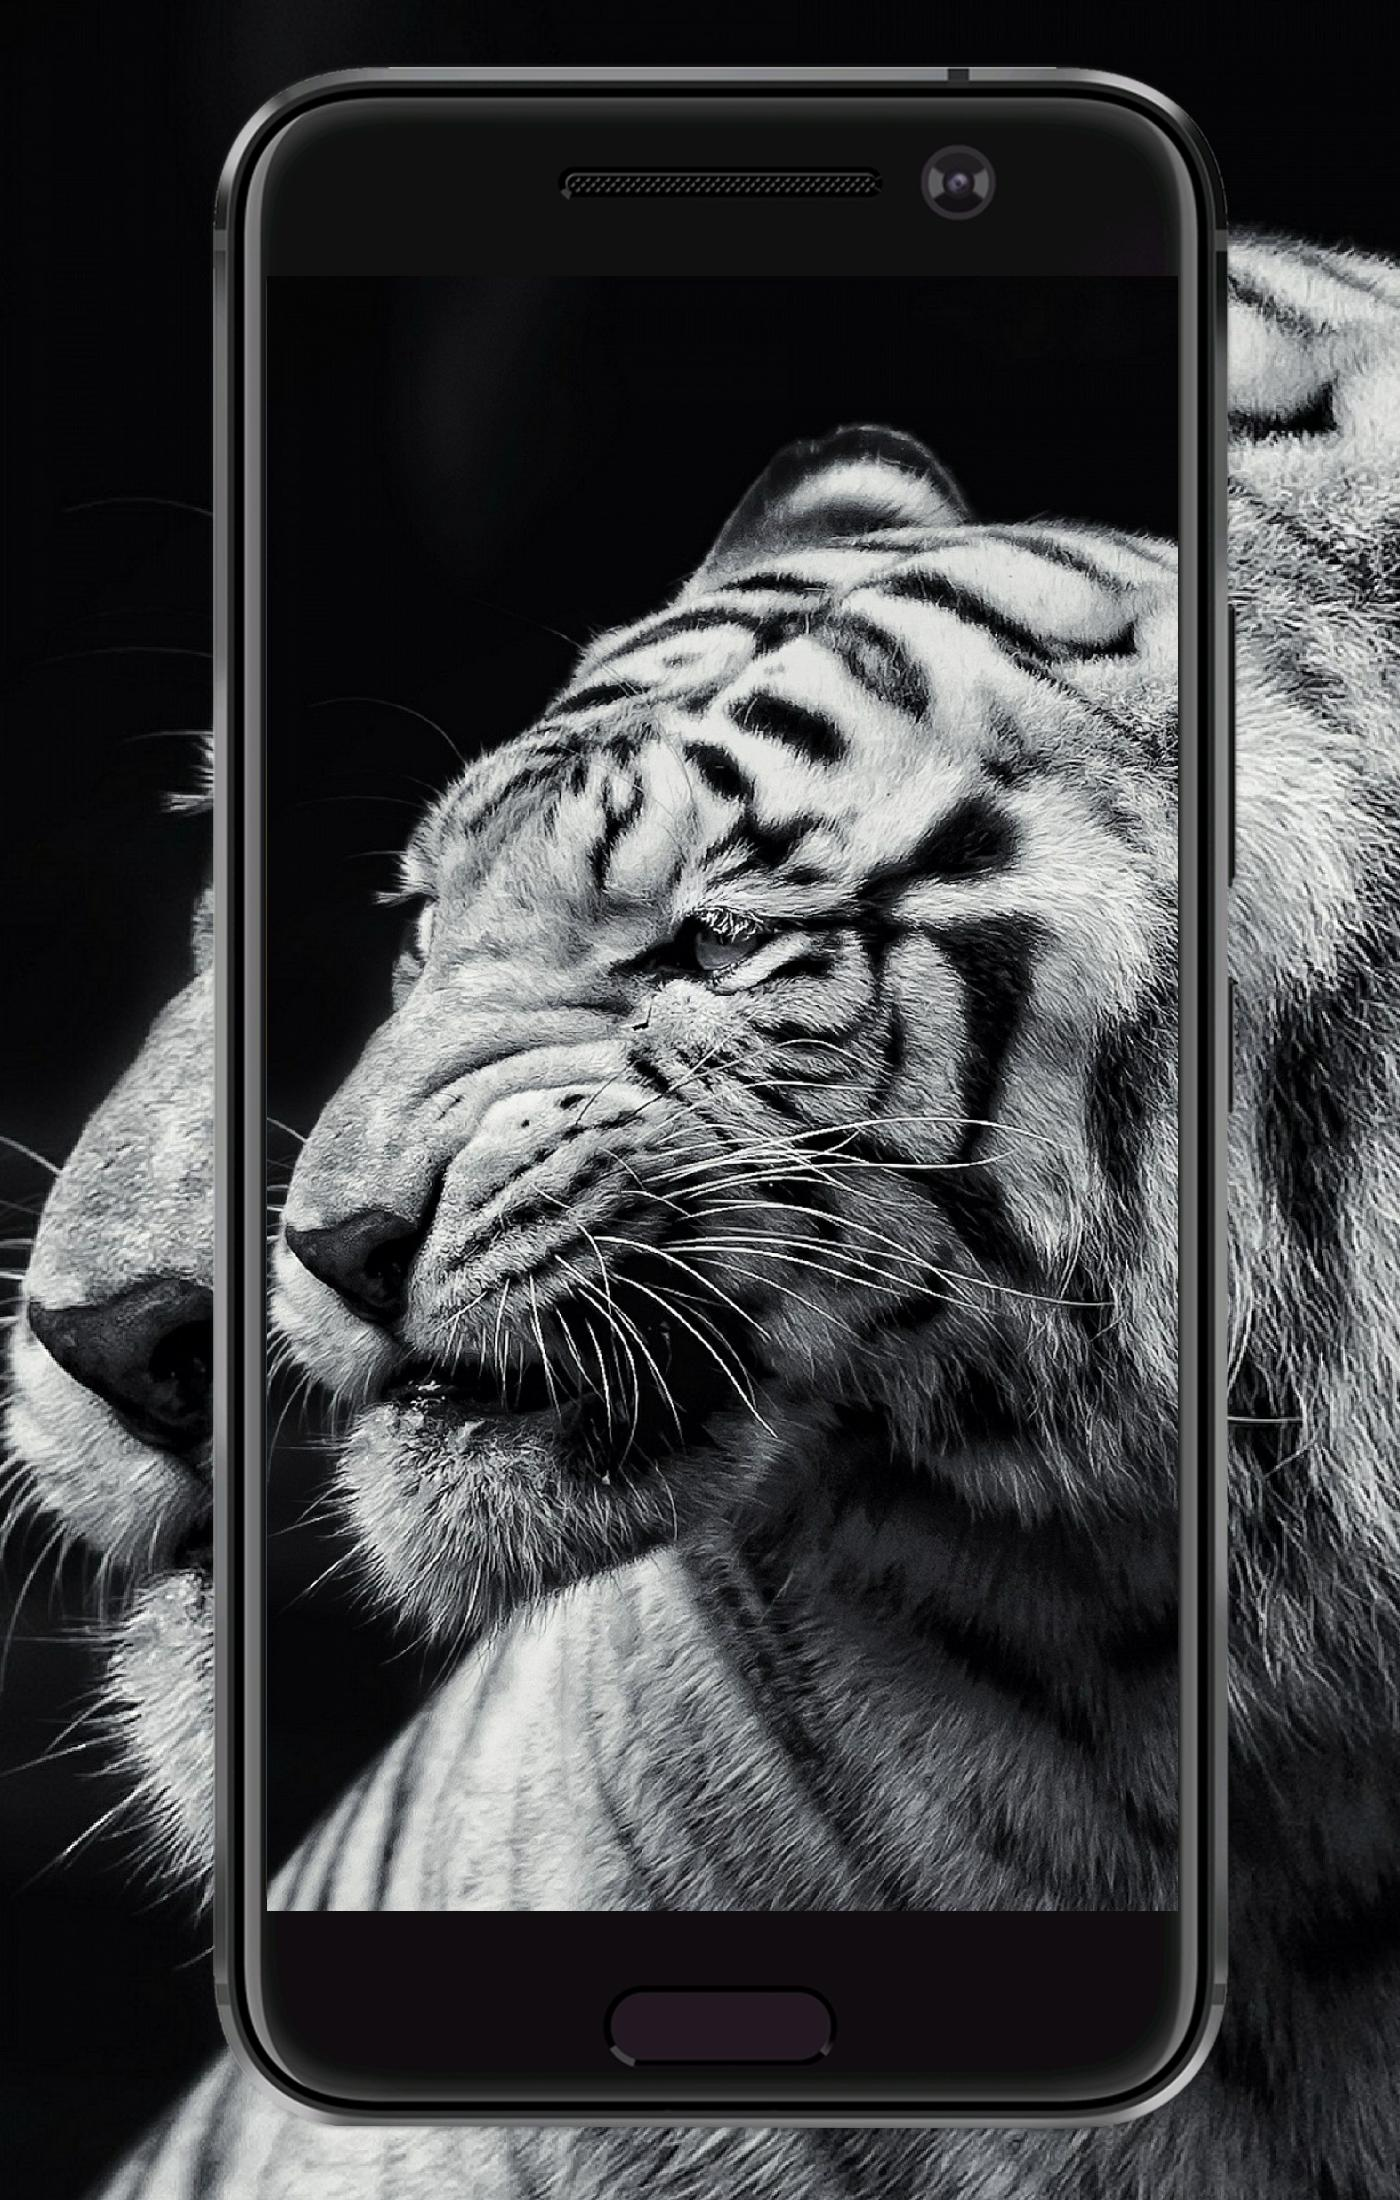 Tiger Wallpaper Hd For Android Apk Download